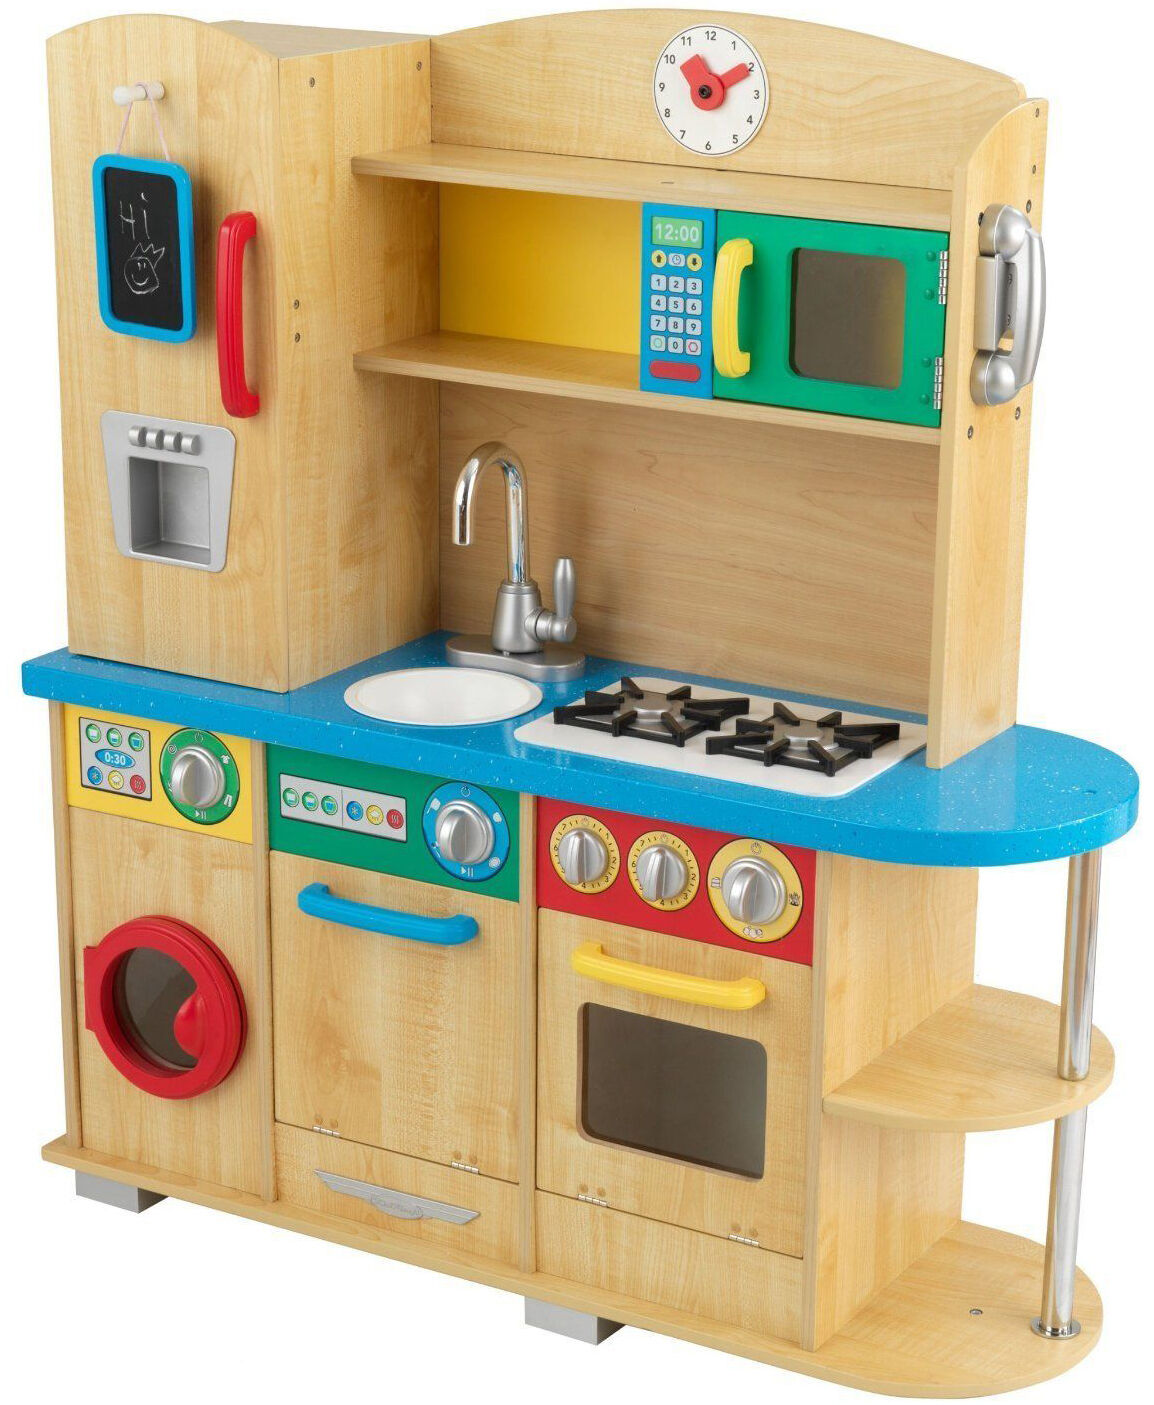 Kidkraft Kitchen top 10 wooden kitchens for kids | ebay